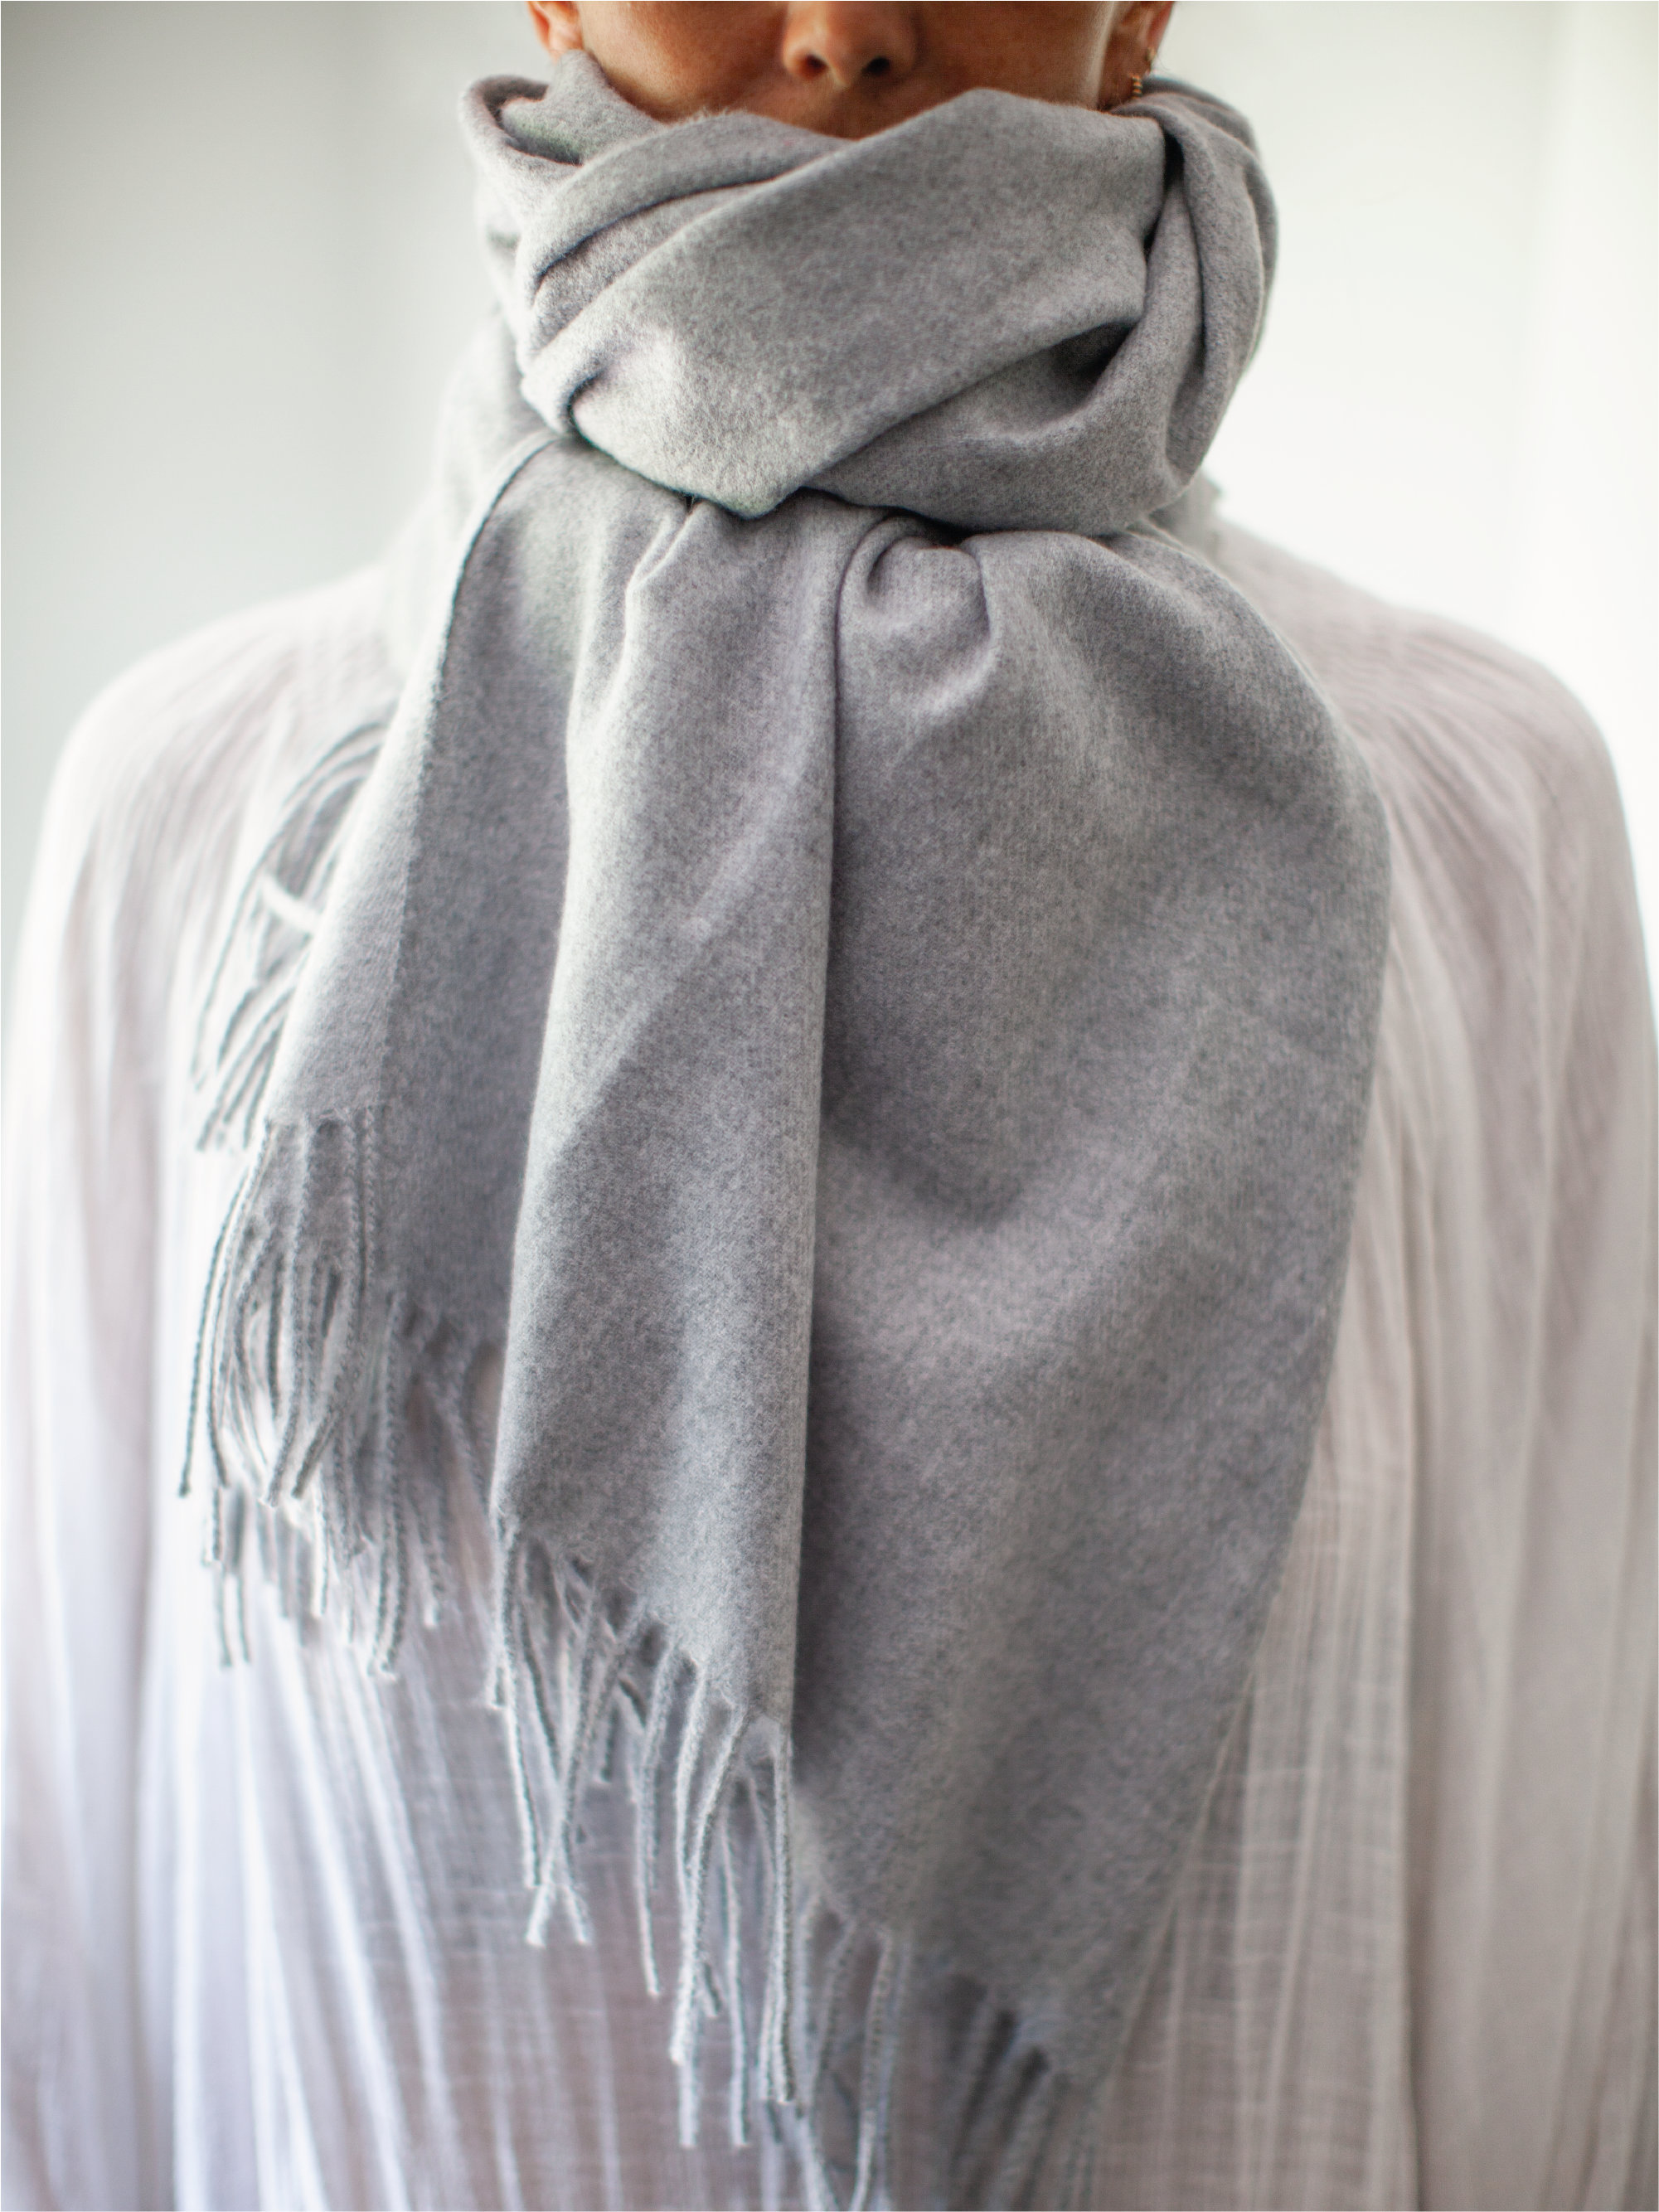 Soft Albi &Mac scarf which comes in a £50 gift box